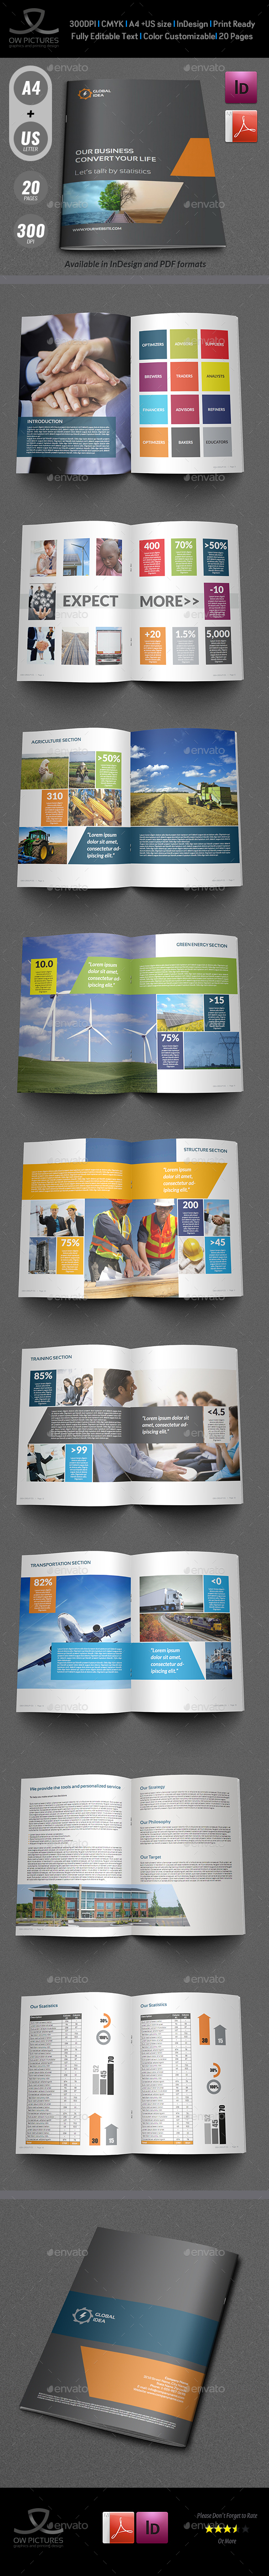 Corporate Brochure Template Vol.4 - 20 Pages - Corporate Brochures